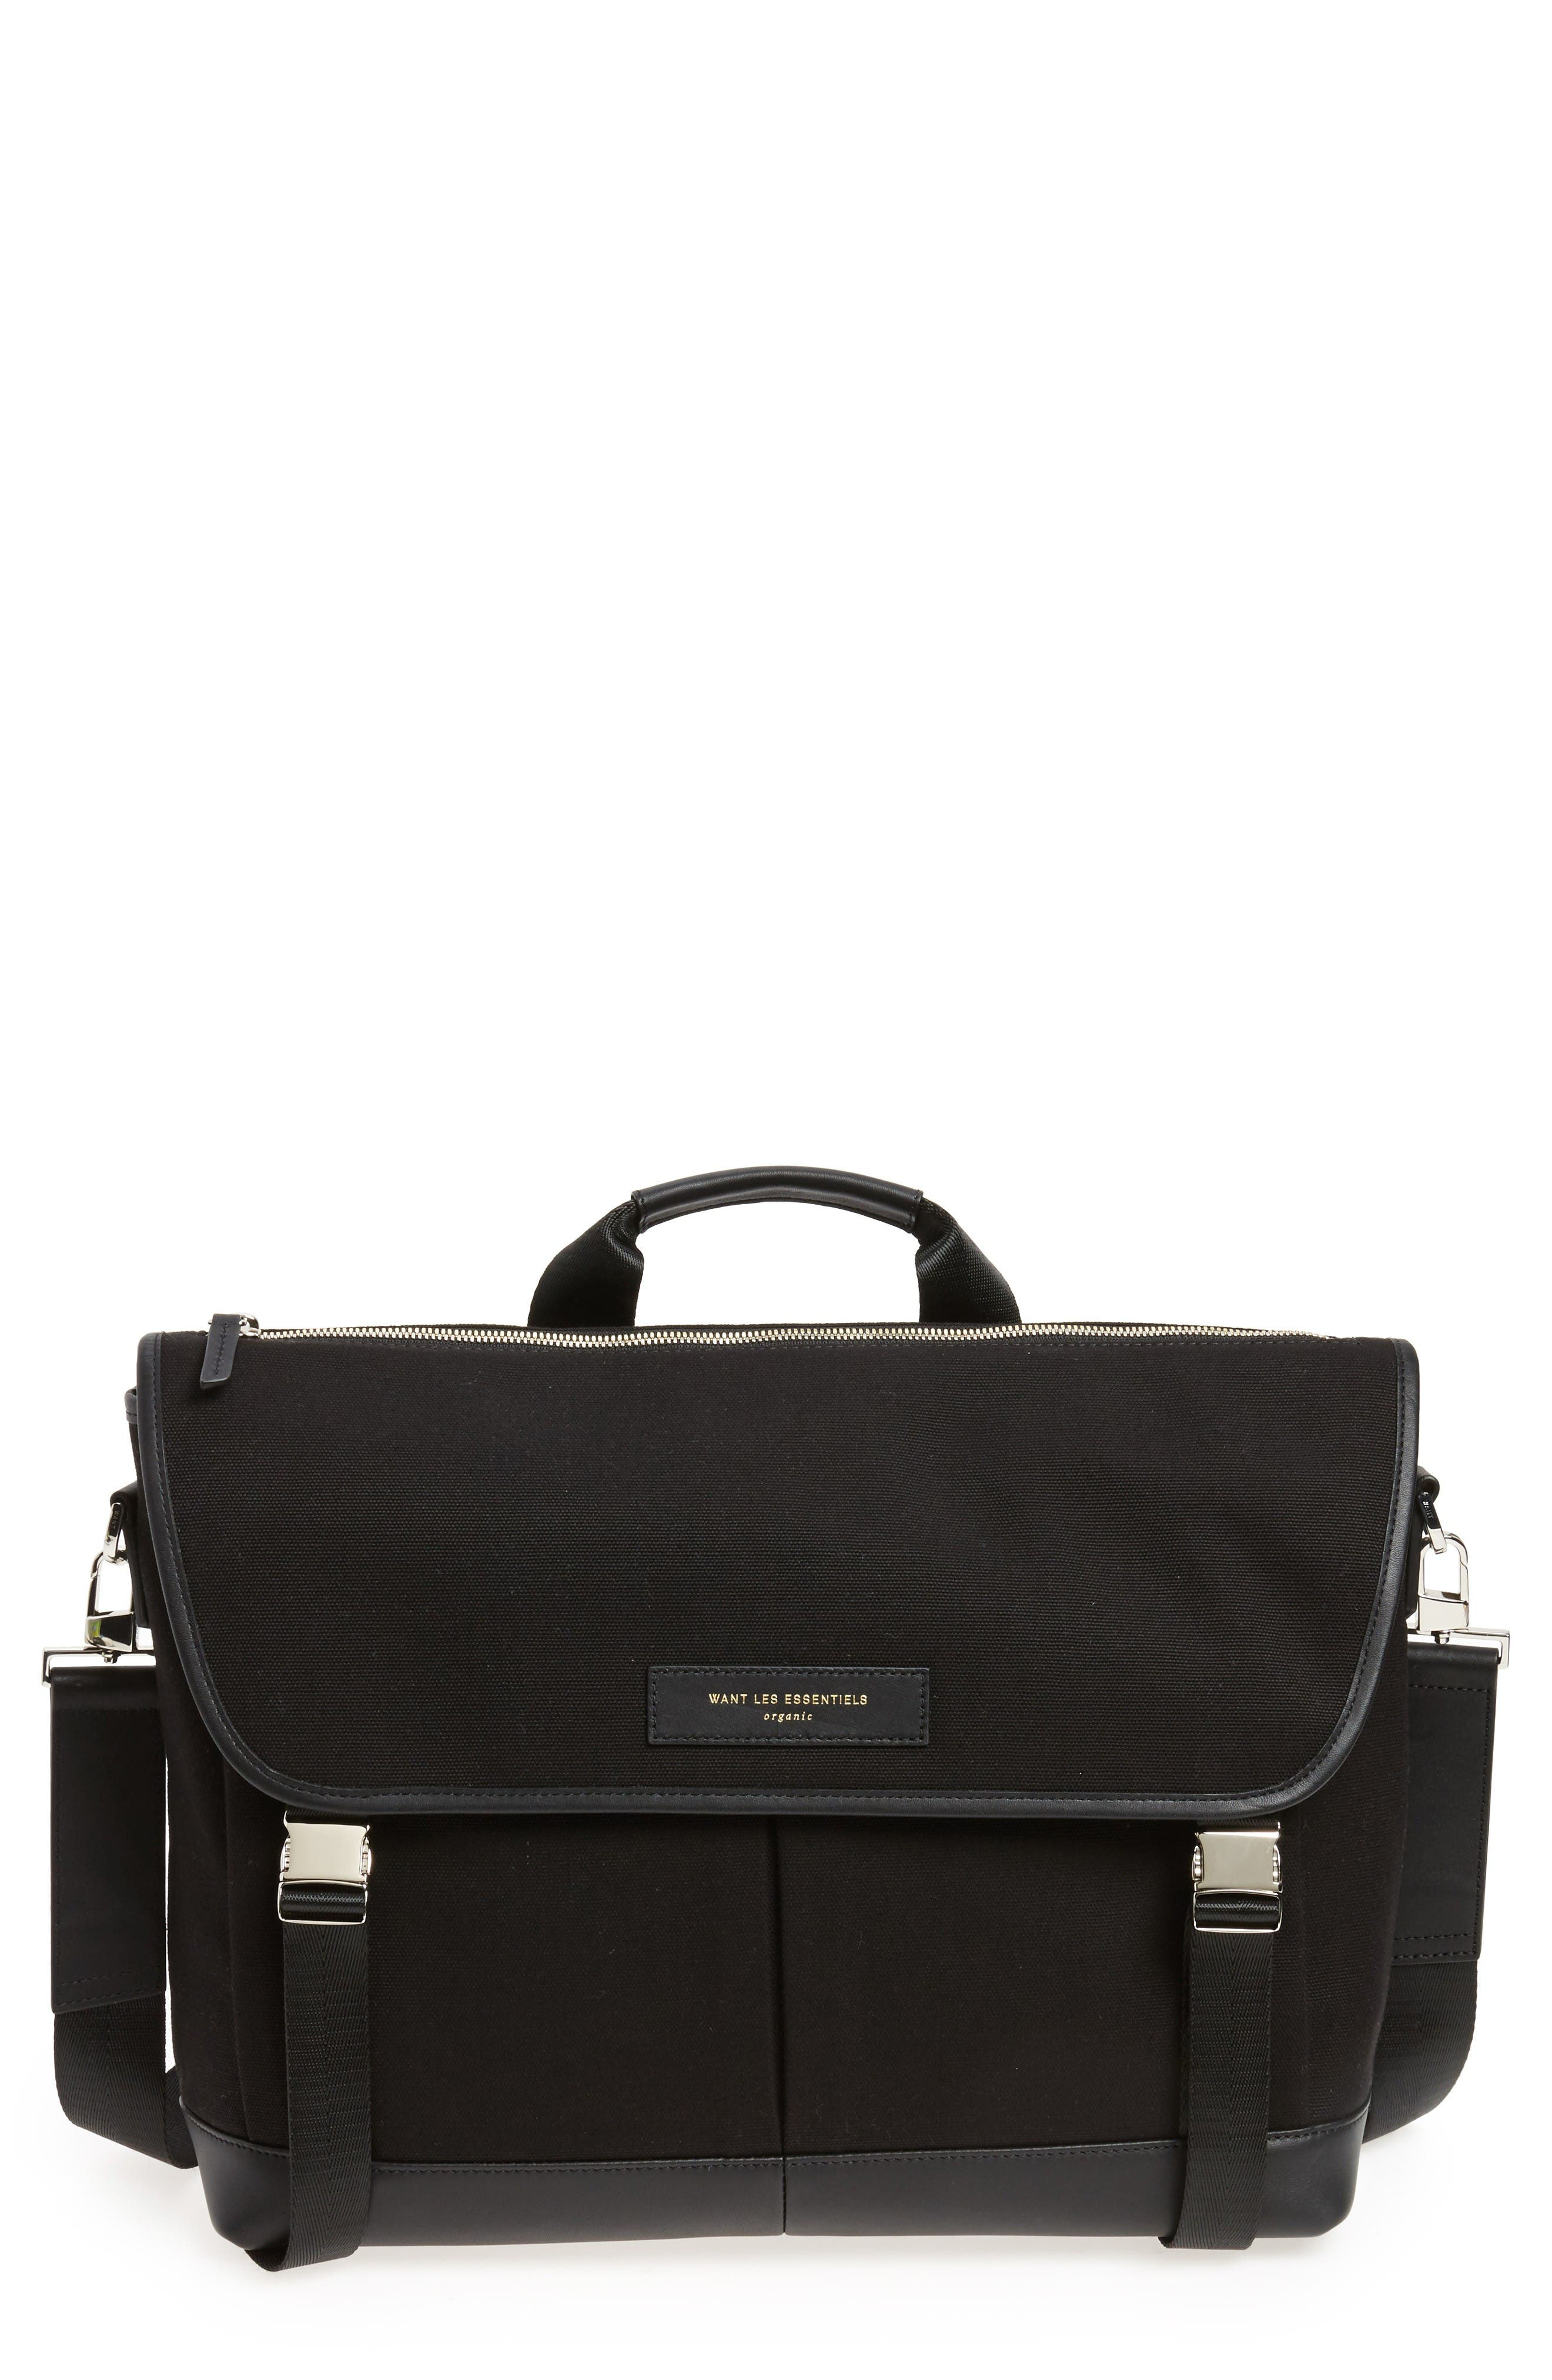 WANT LES ESSENTIELS Jackson Messenger Bag